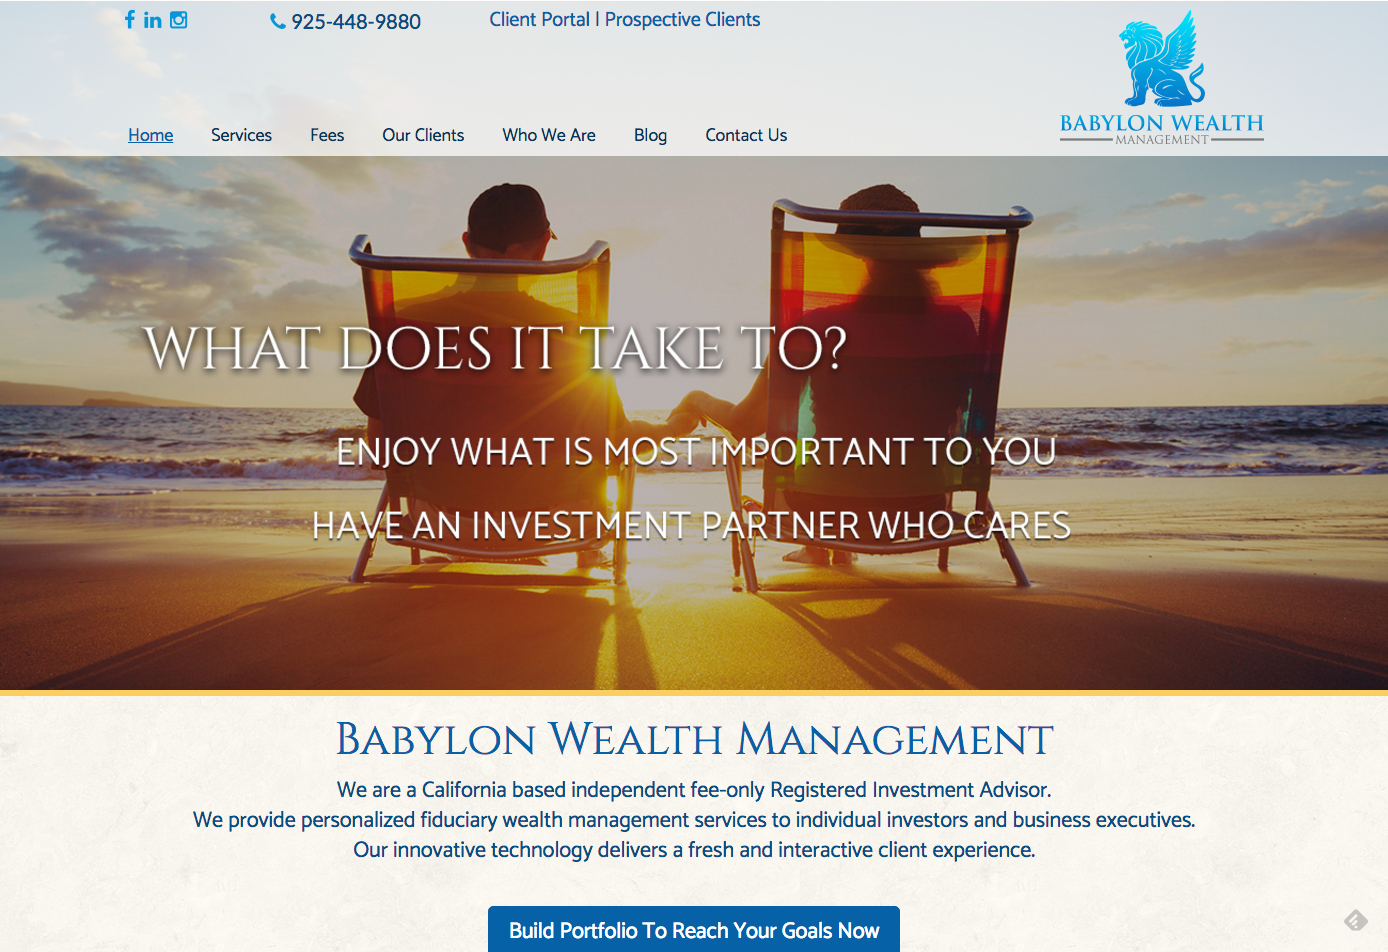 Babylon Wealth Management